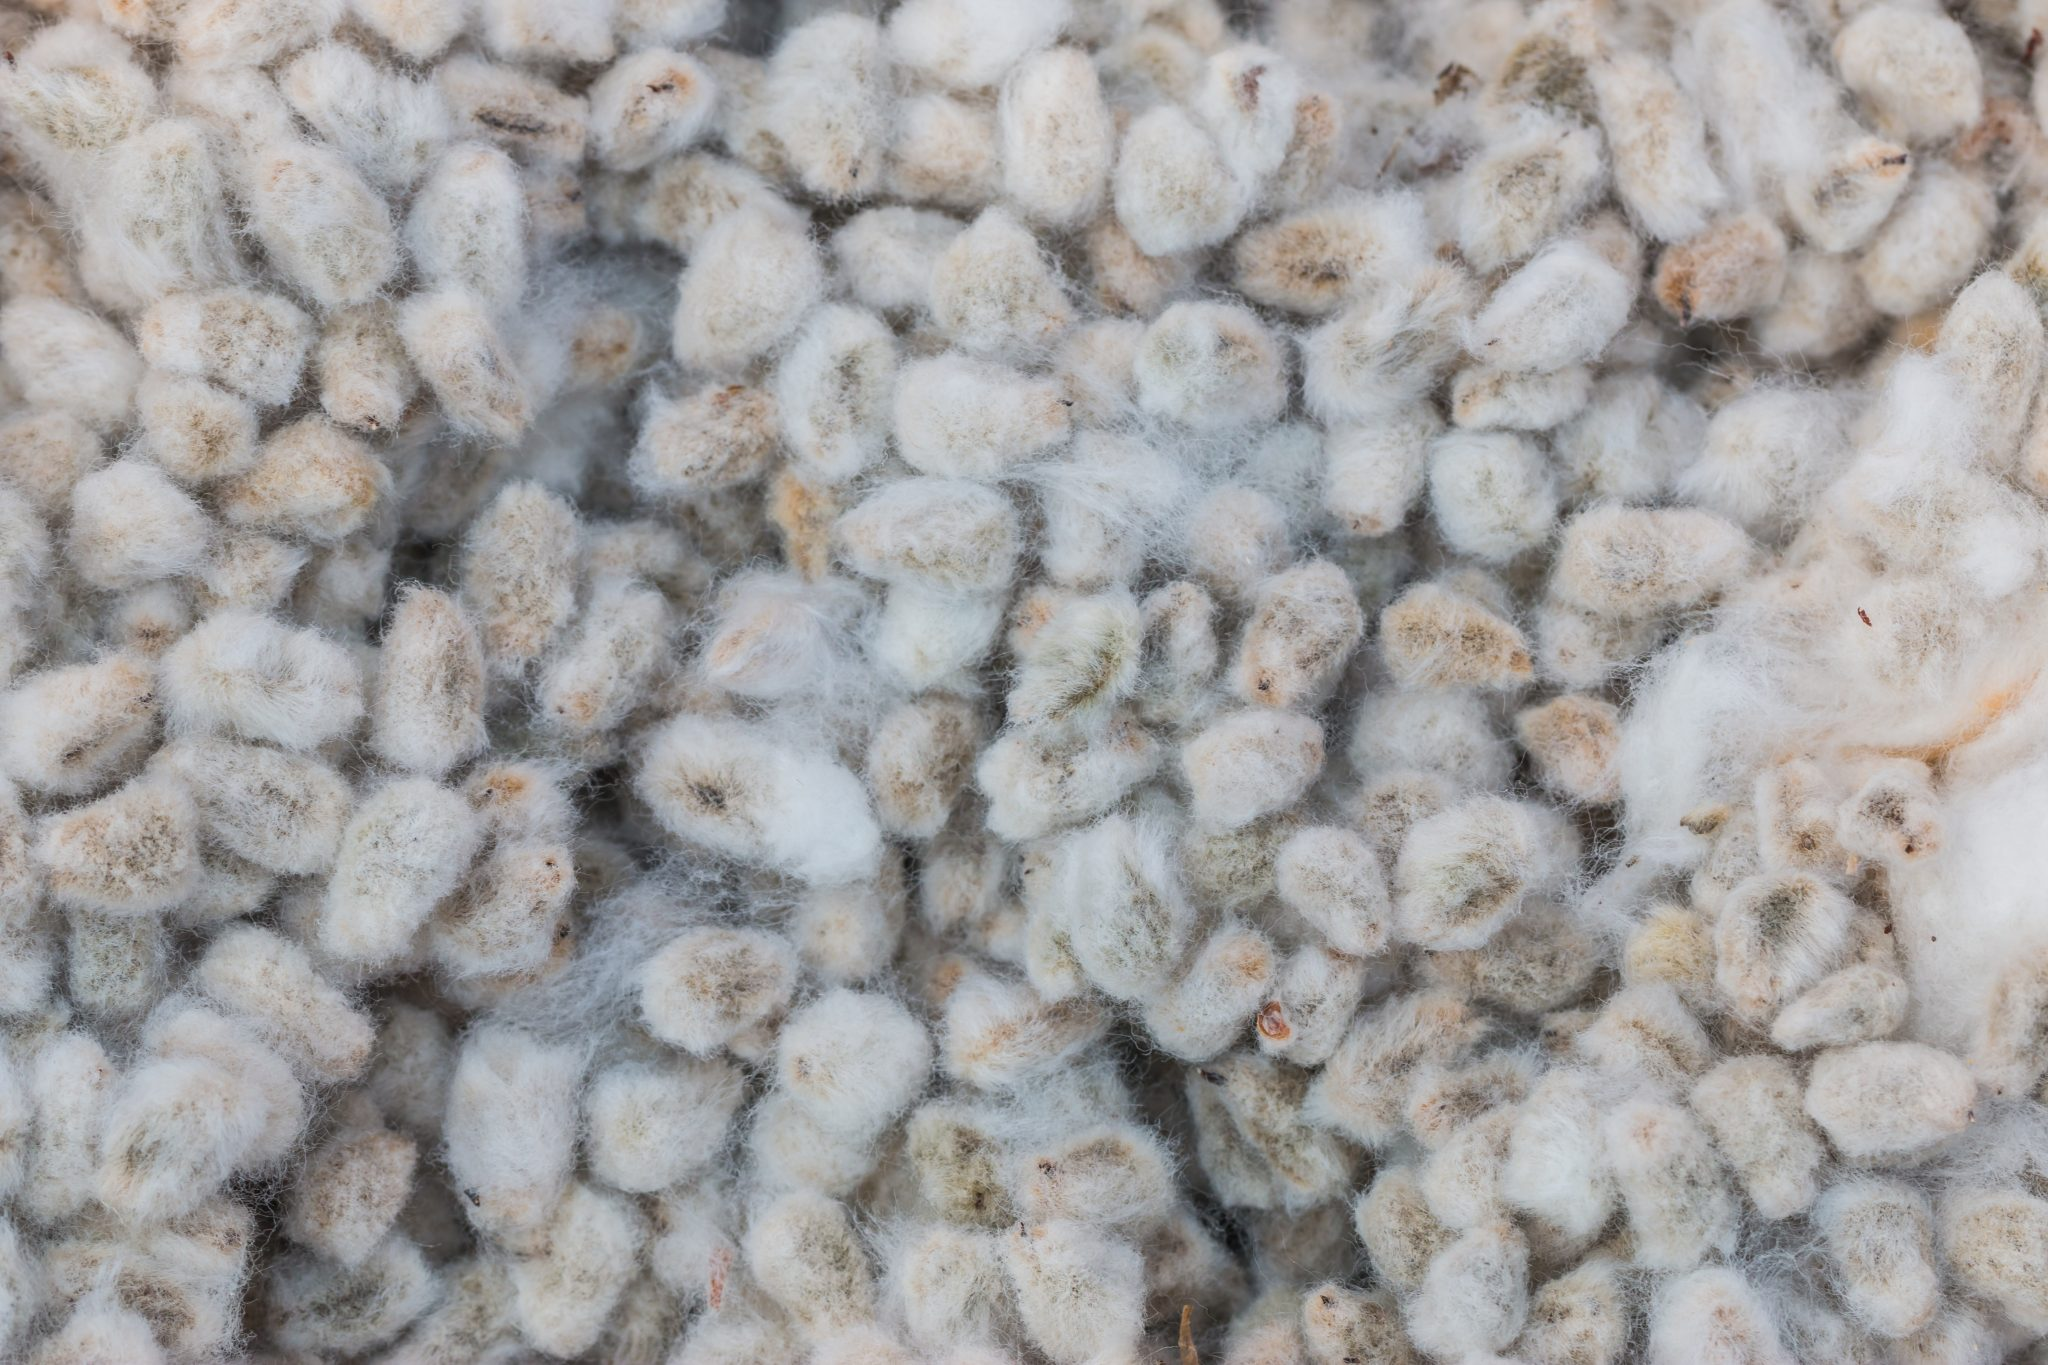 Whole cottonseed is one of many cotton byproducts.